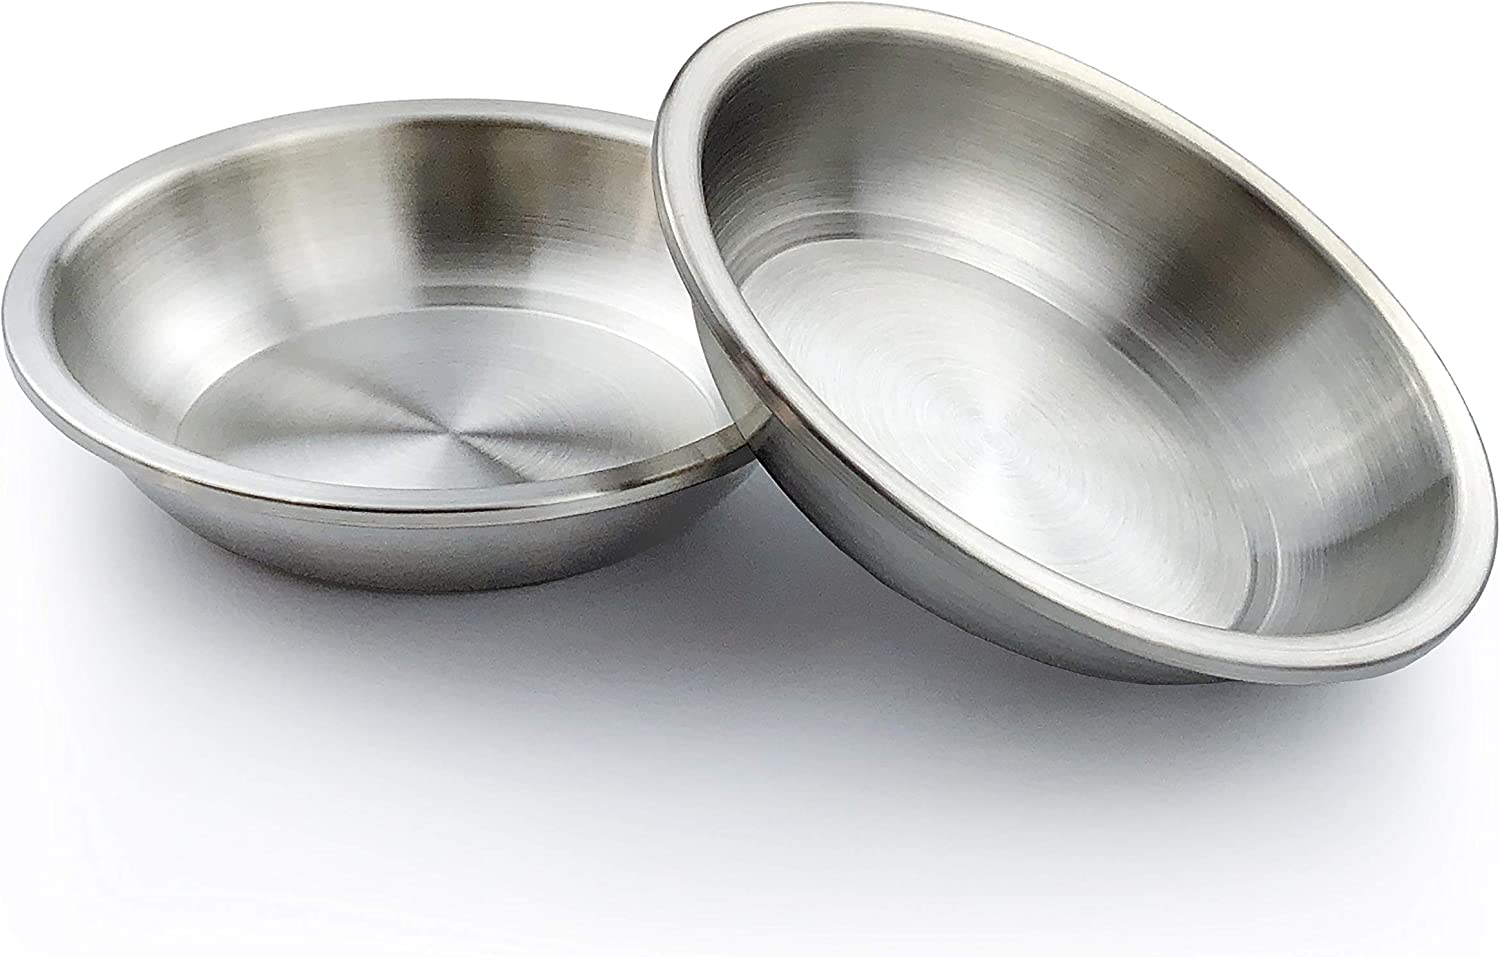 KOOLDOG Stainless Steel Dog Bowl-(2 Bowl Set), Premium Feeding Bowls for Small Dog, Cat and Puppy, Metal Feeder for Food and Water, Fits with Kooldog Elevated Pet Bowl Stand